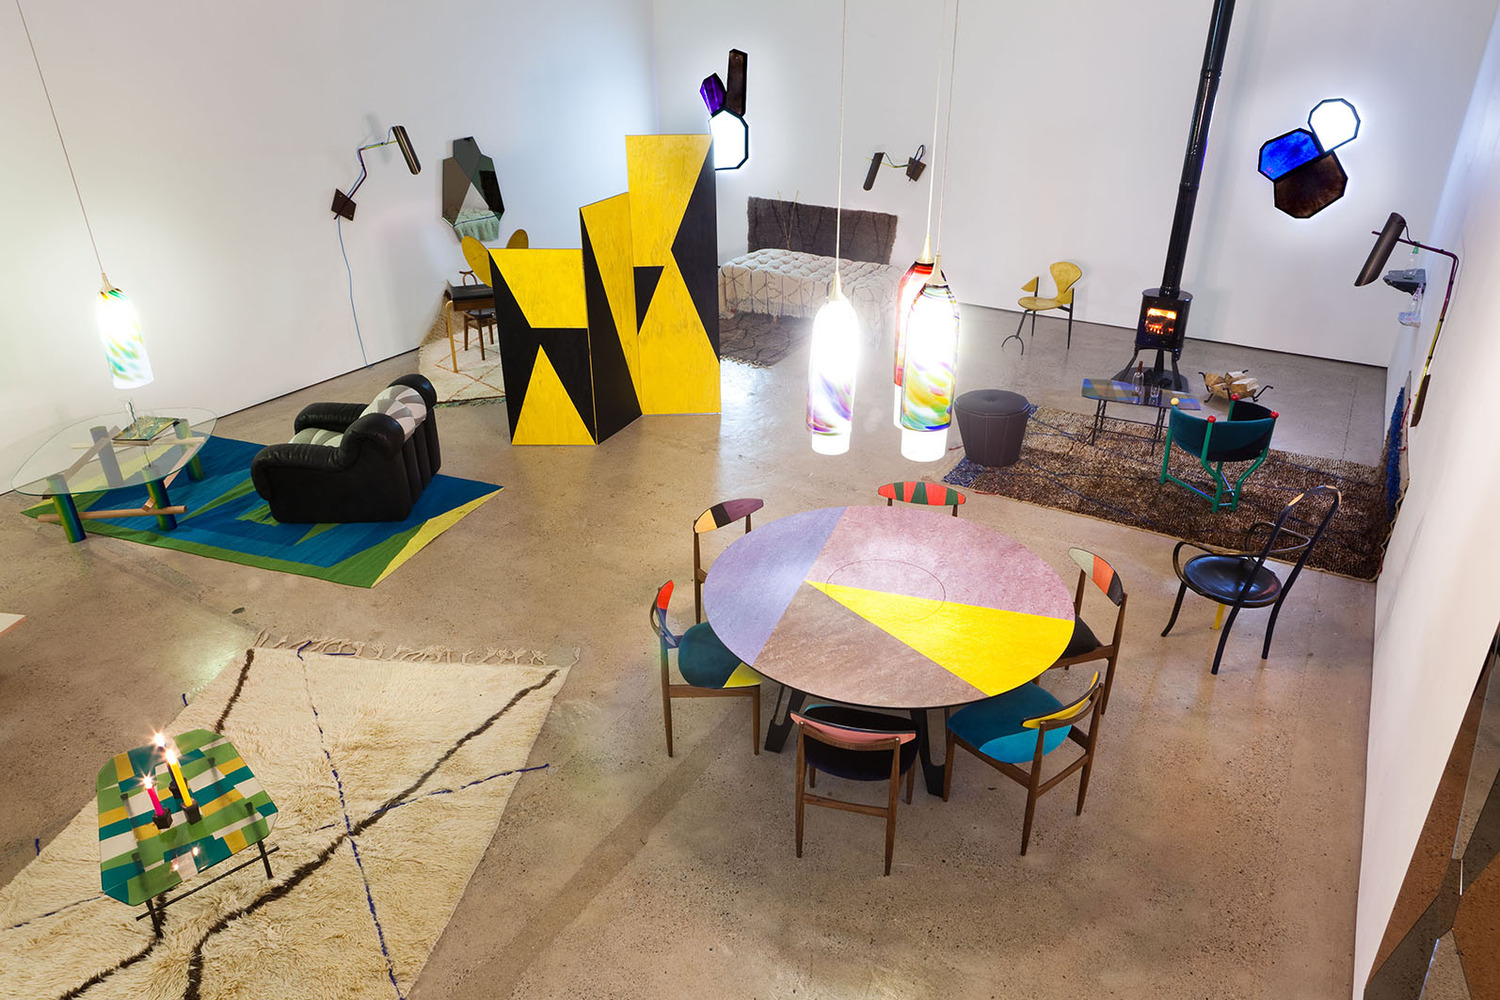 Installation view, 'Tu casa, mi casa', The Modern Institute, Aird's Lane, Glasgow, 2013